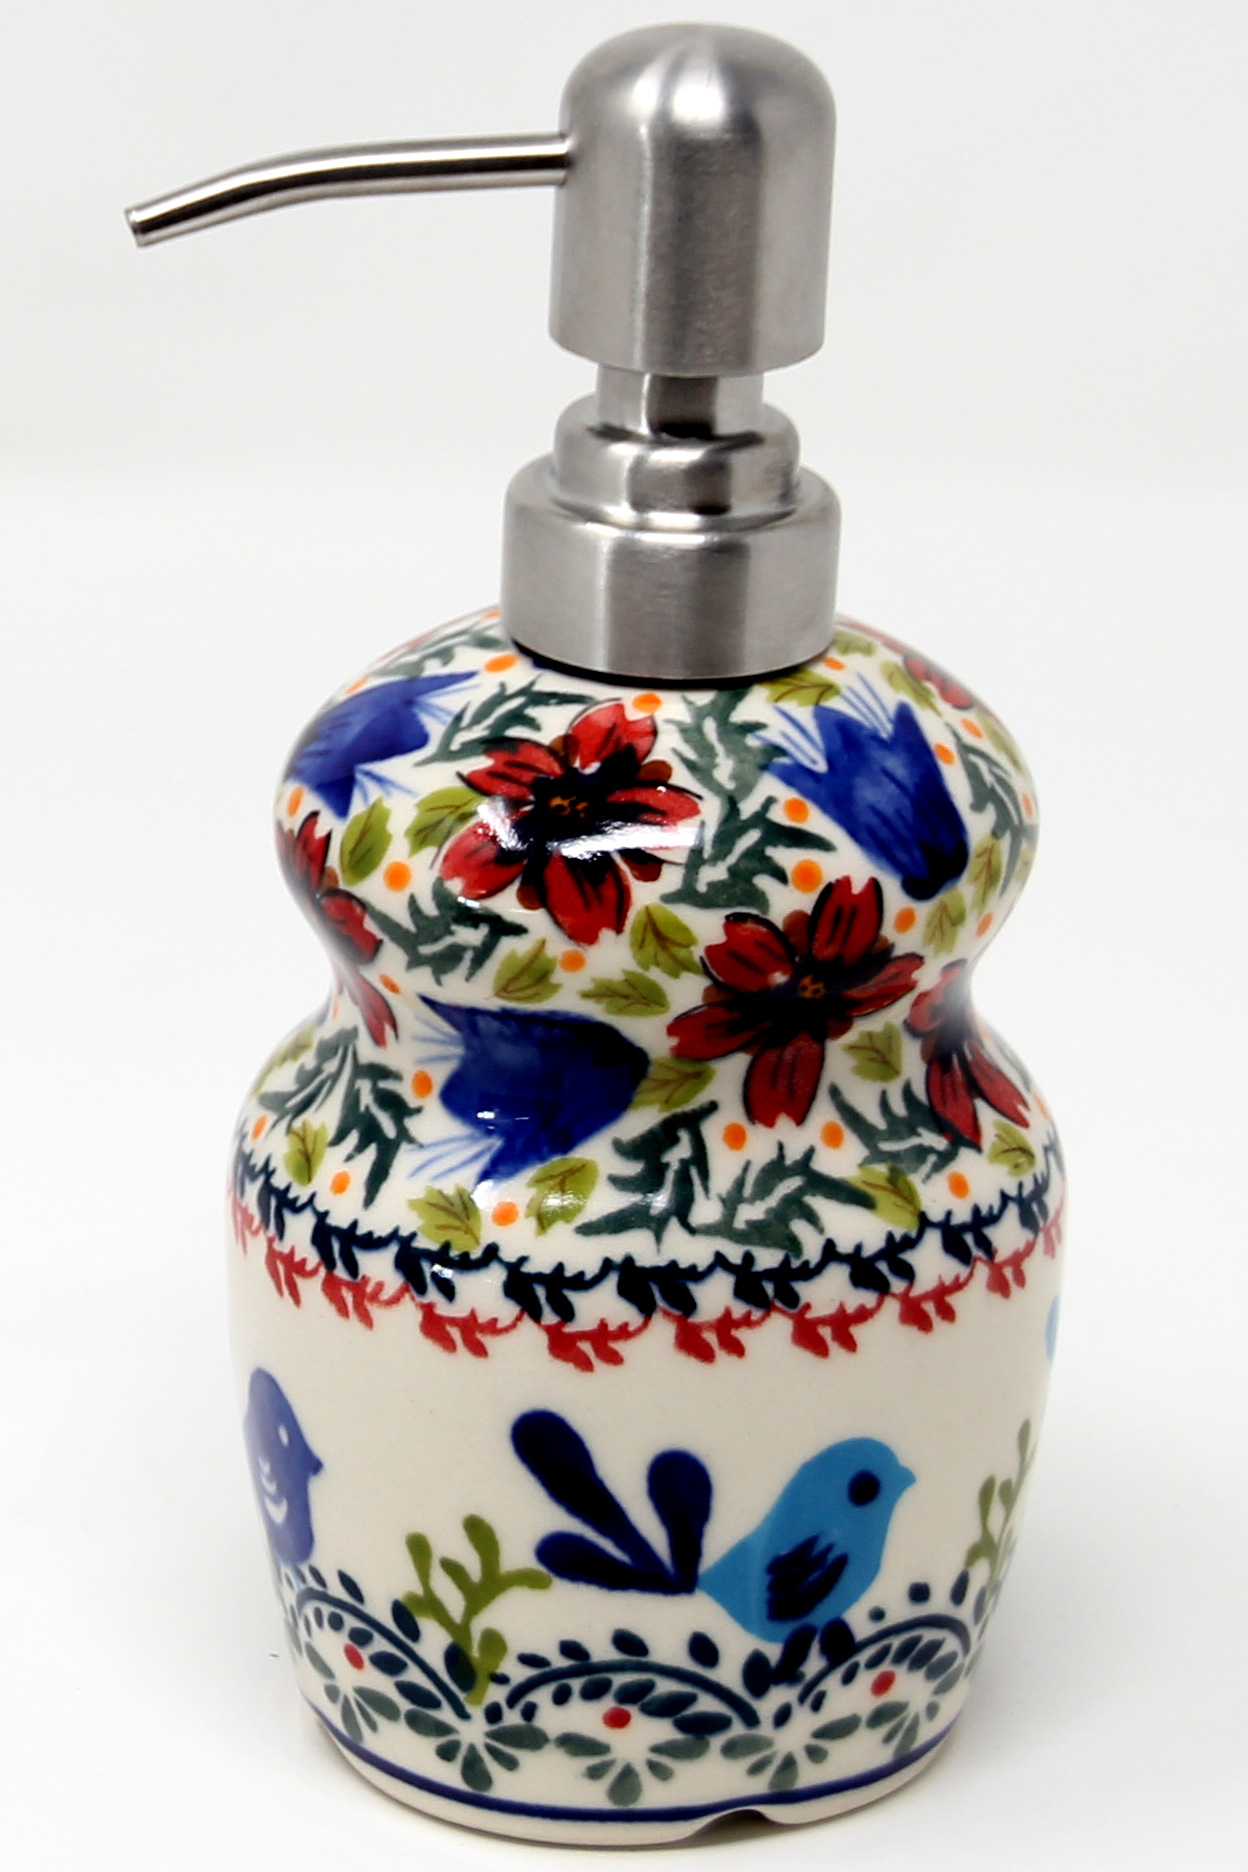 Soap Dispenser Polish Pottery from Zaklady painted by Marta Szewc